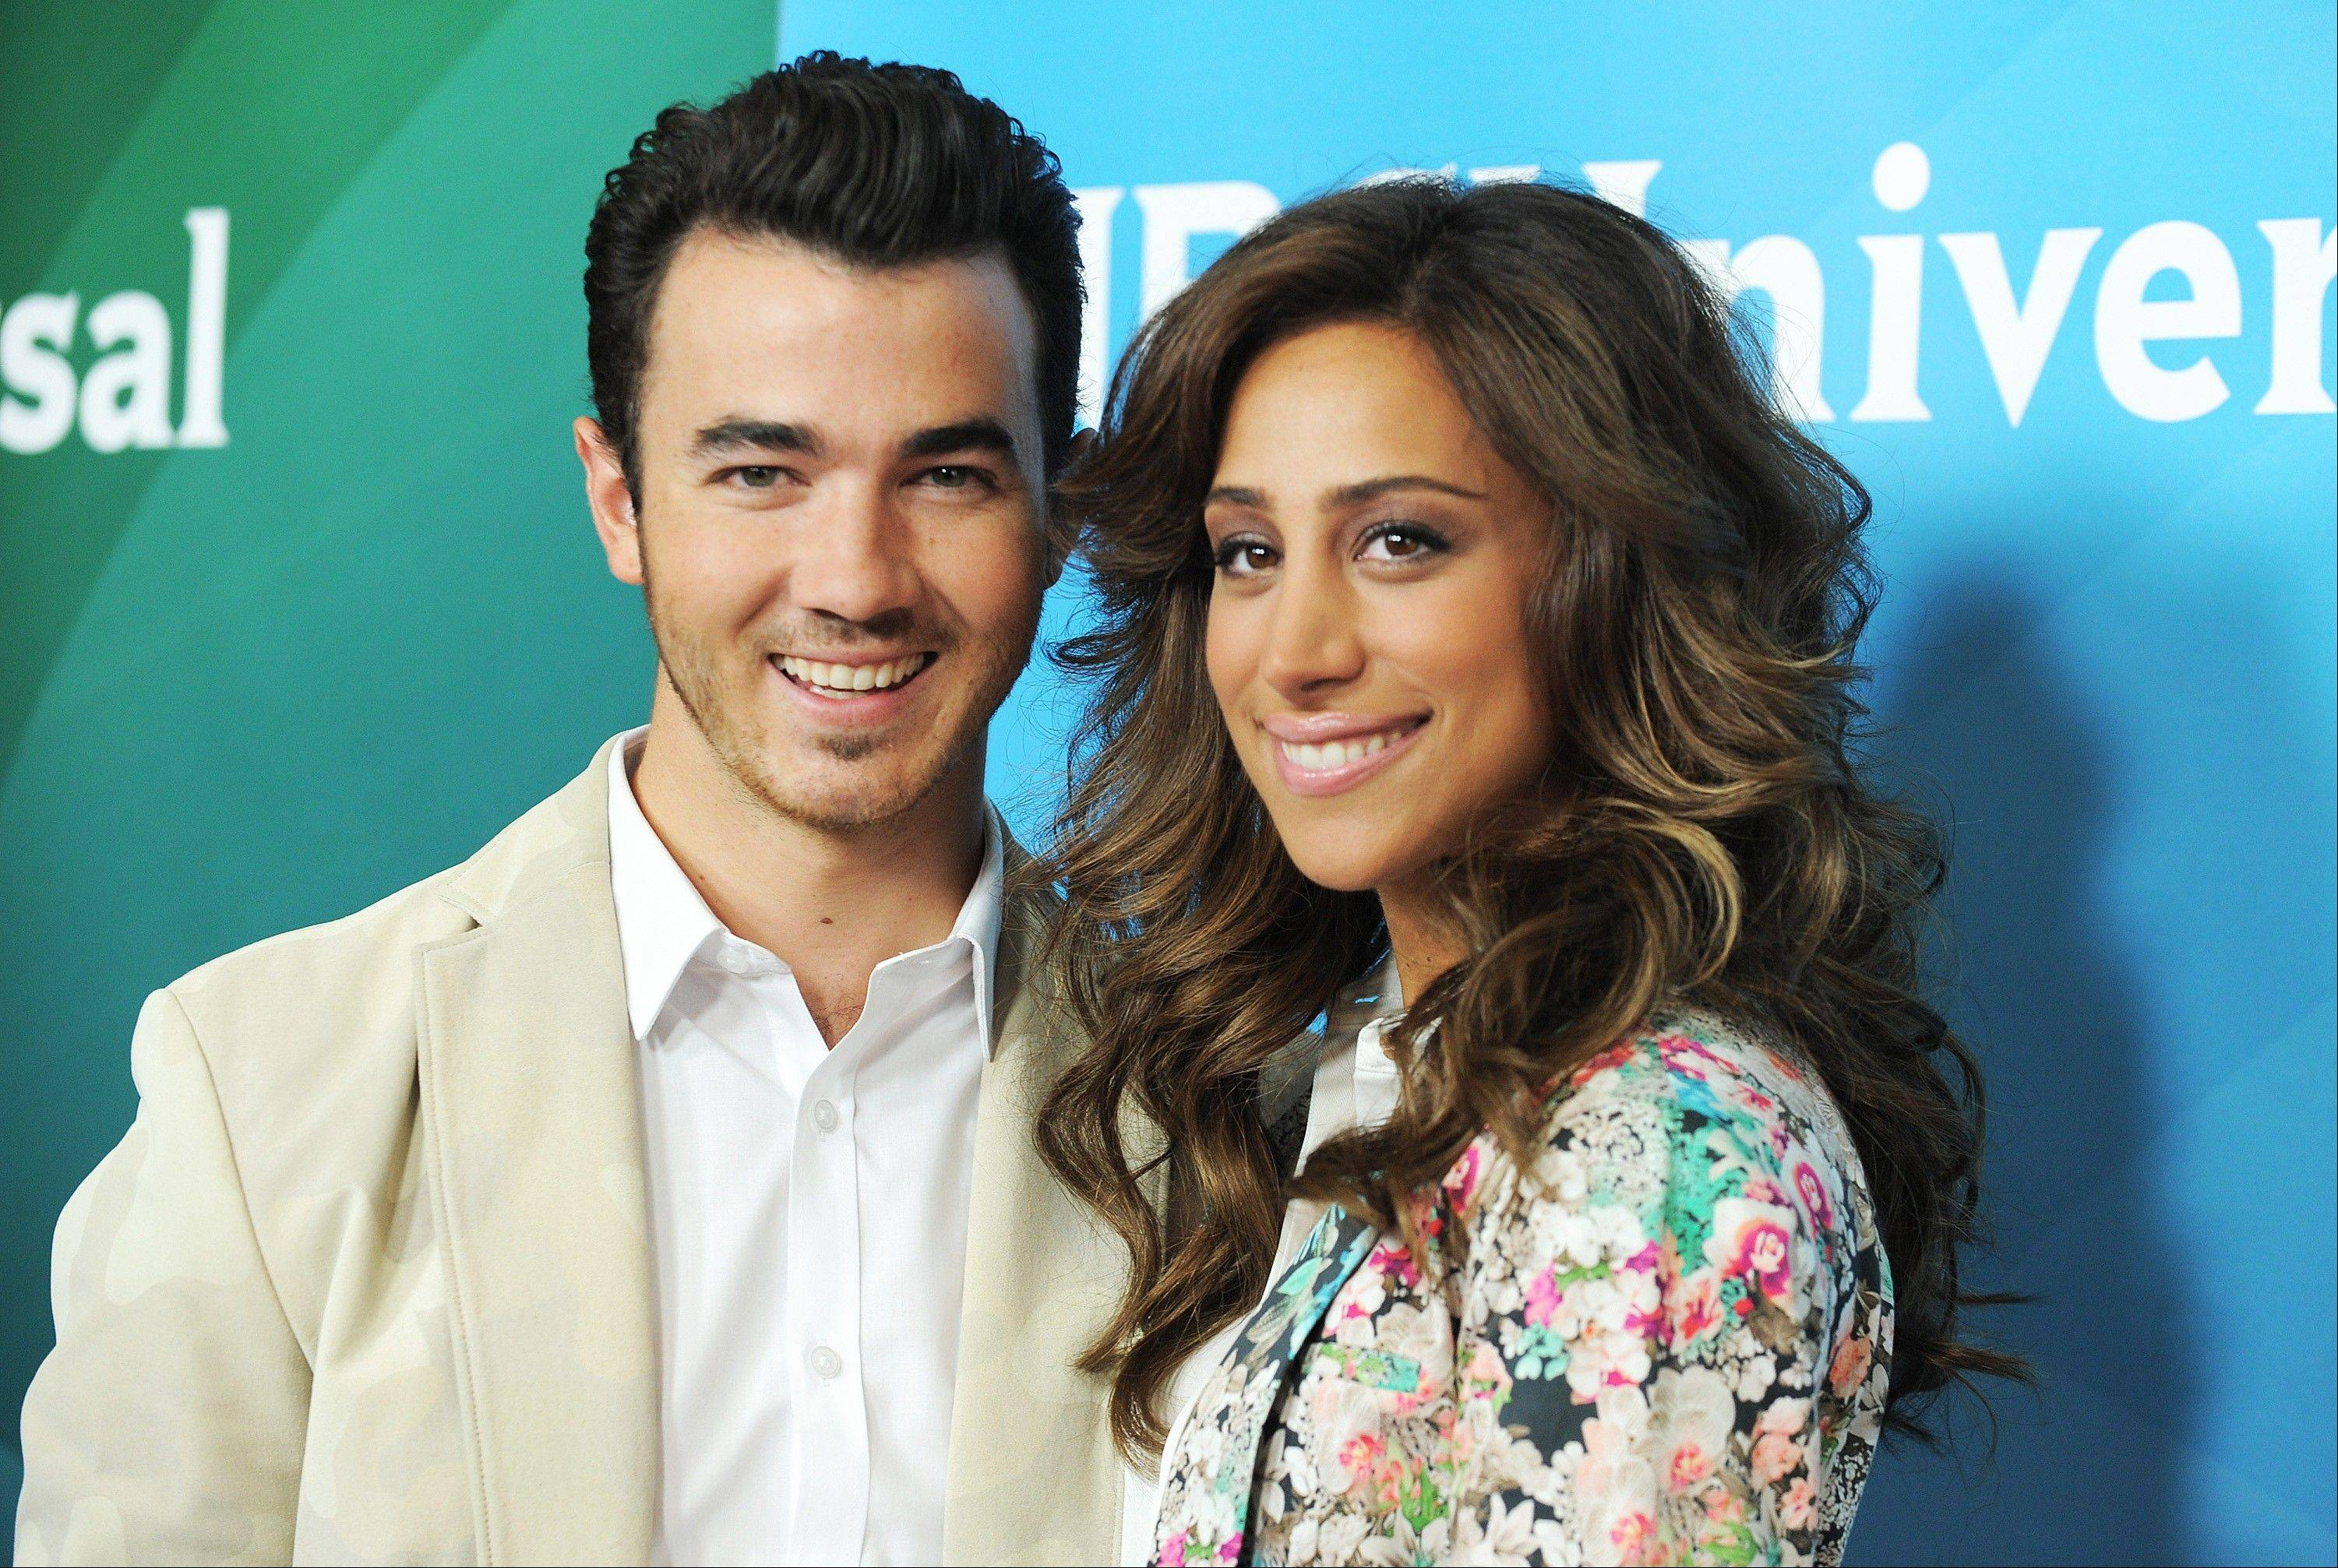 In this July 25, 2012, file photo, Kevin Jonas and Danielle Jonas attend the second day of NBCUniversal's 2012 Summer Press Tour at the Beverly Hilton Hotel in Beverly Hills, Calif. A representative for the Jonas Brothers says Kevin and wife, Danielle, are expecting their first child. The two married in 2009.